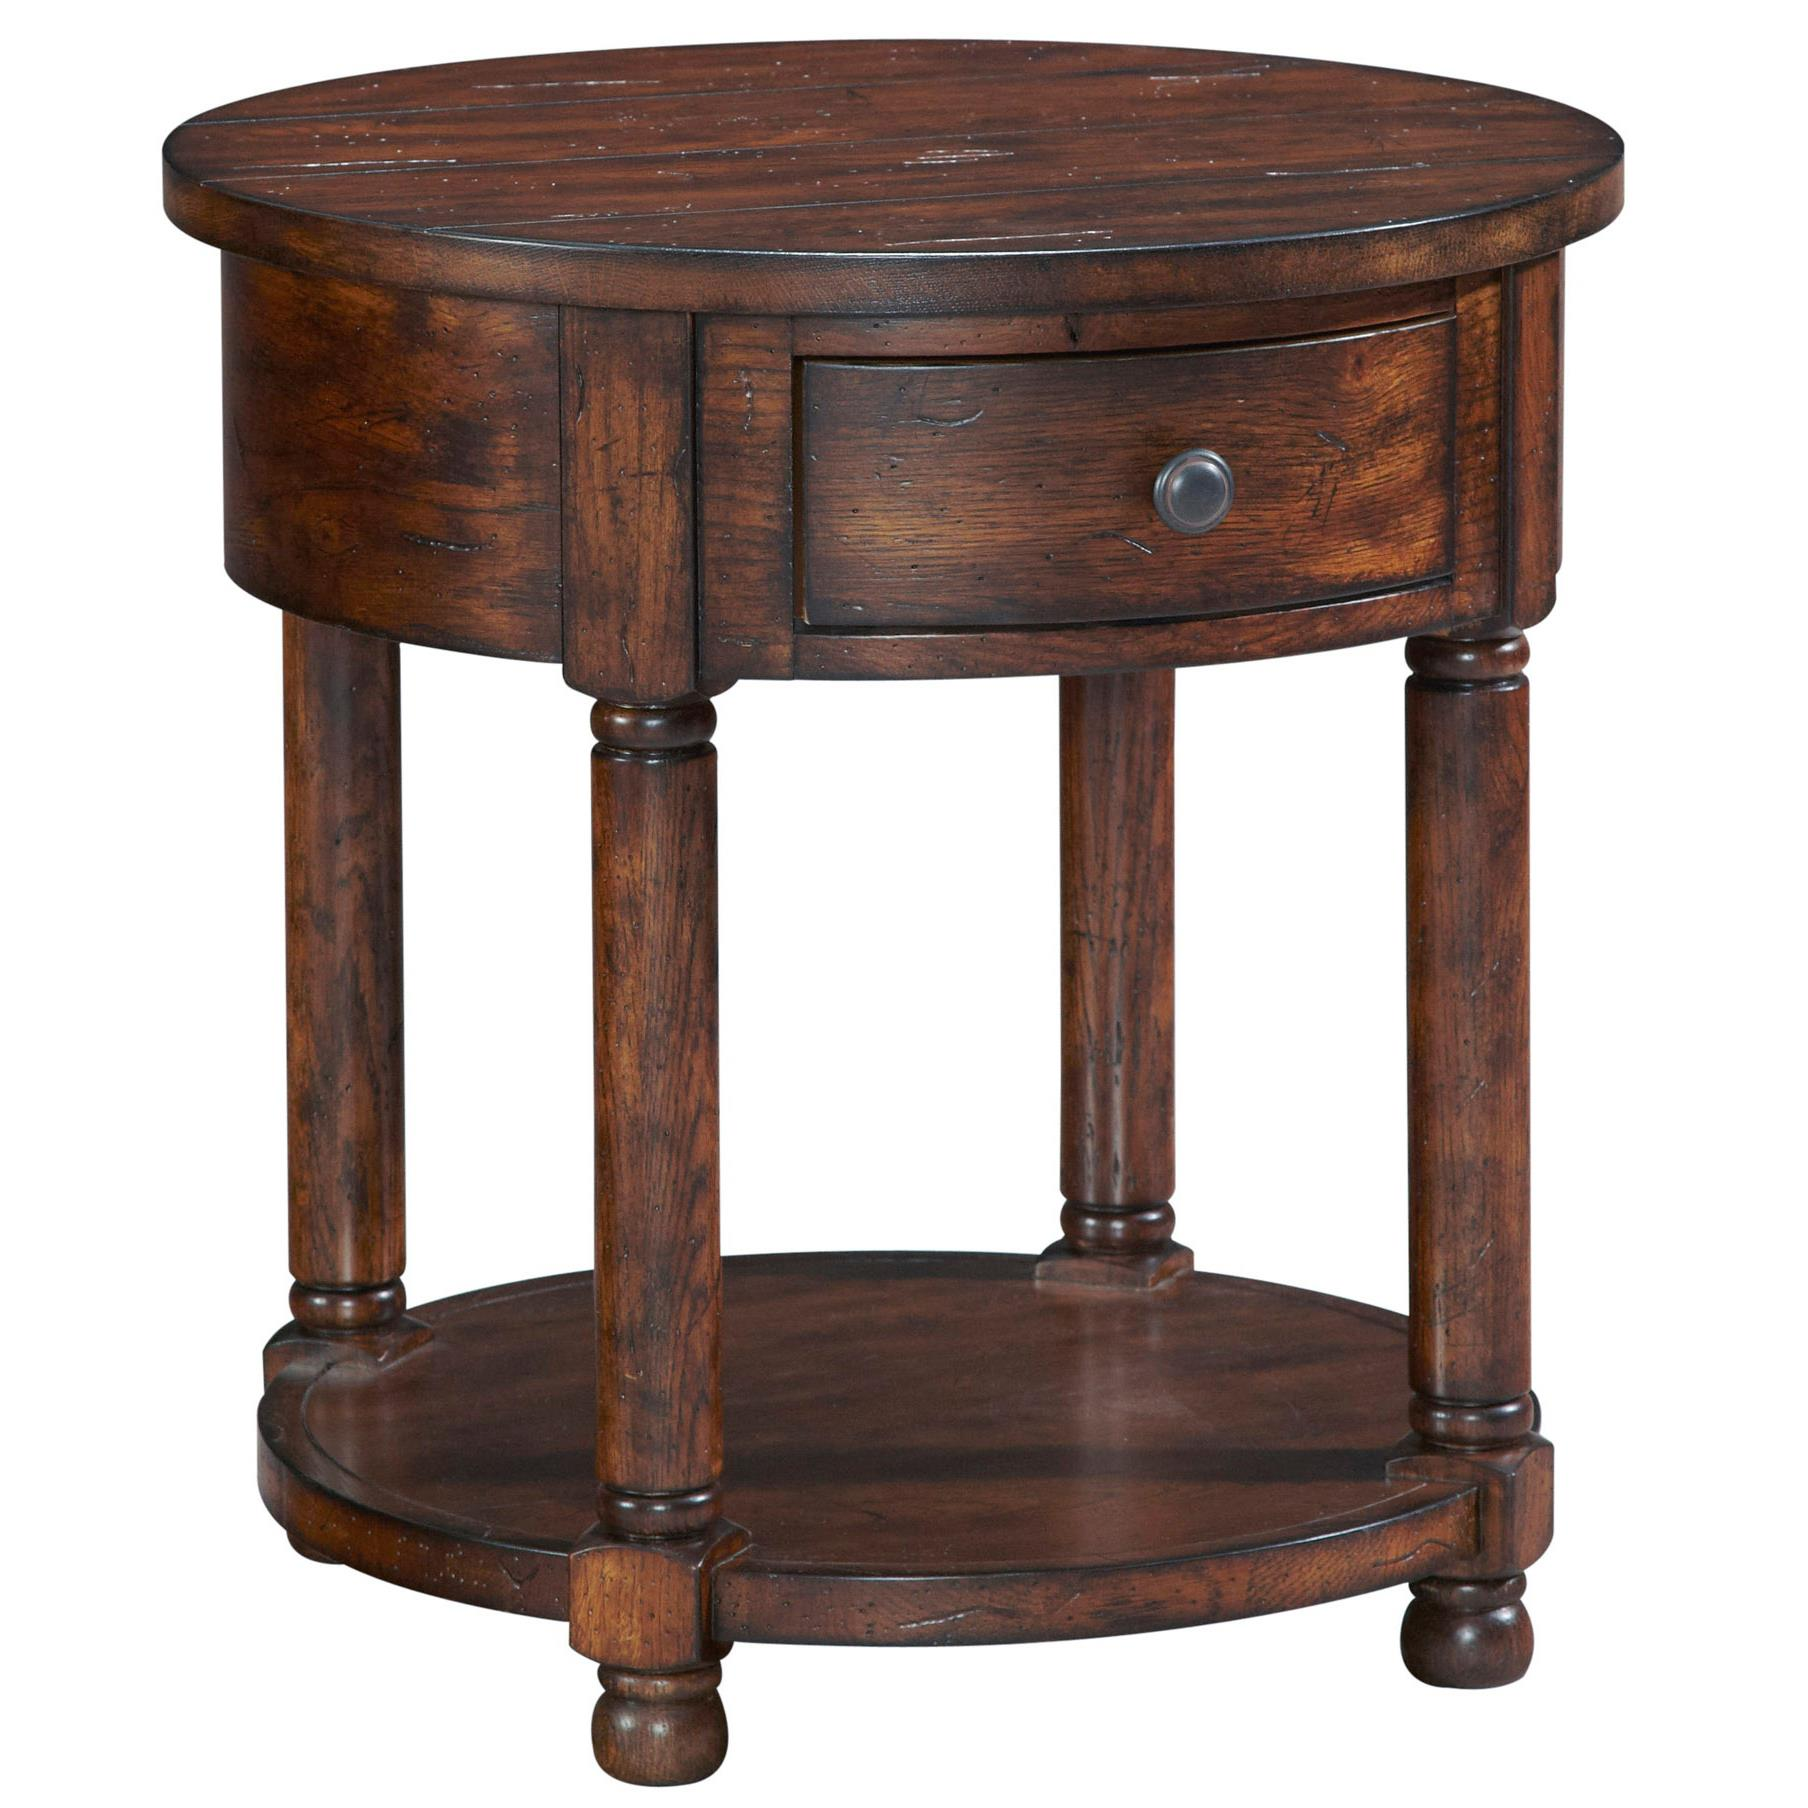 Broyhill Furniture Attic Heirlooms Round End Table - Item Number: 3399-012